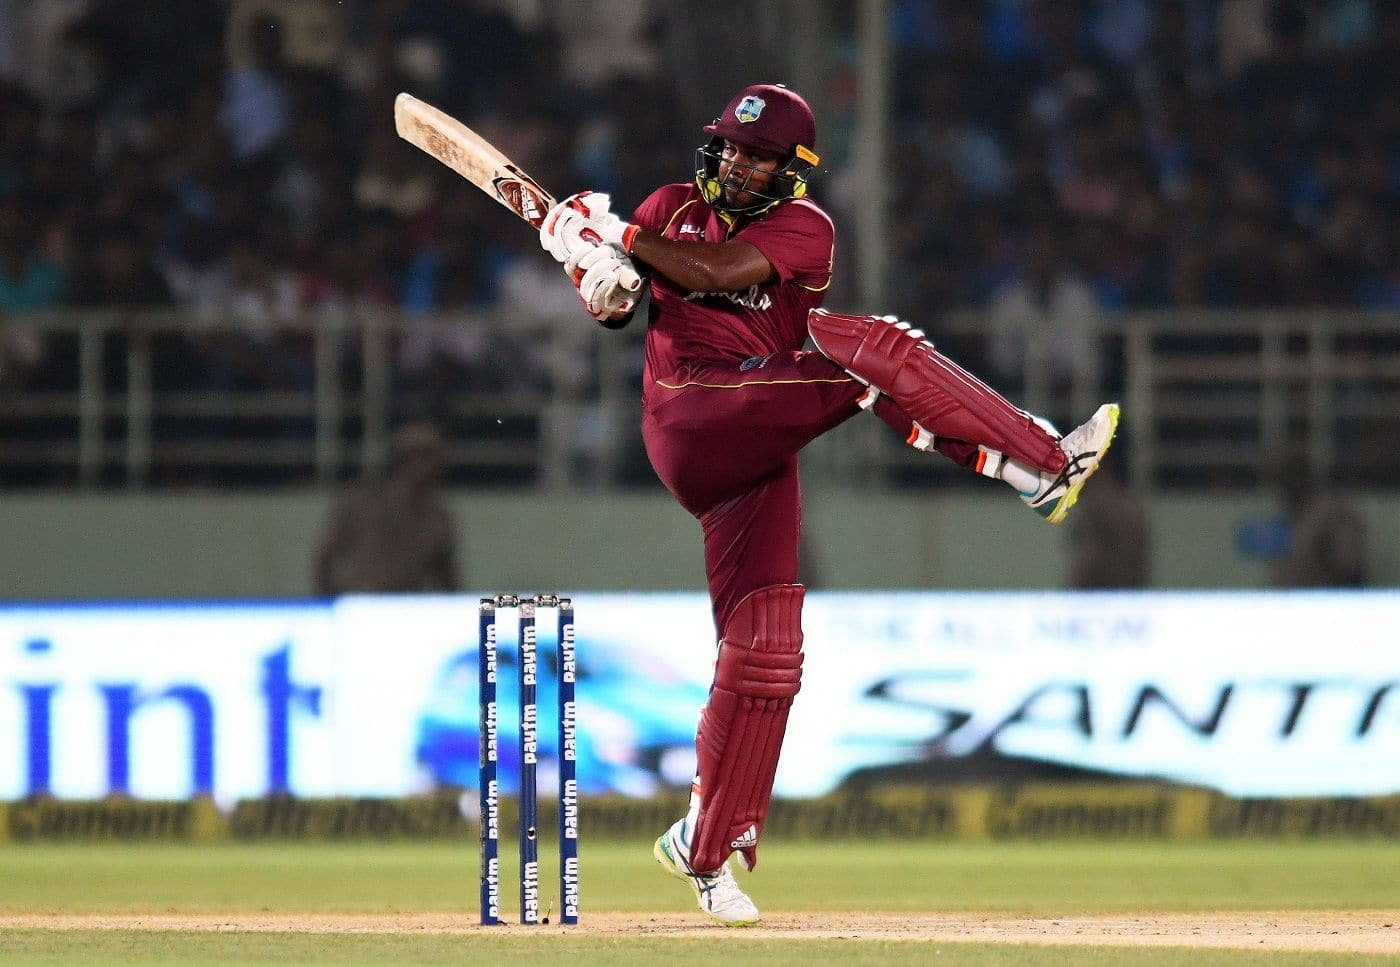 2nd ODI: West Indies field against unchanged Bangladesh